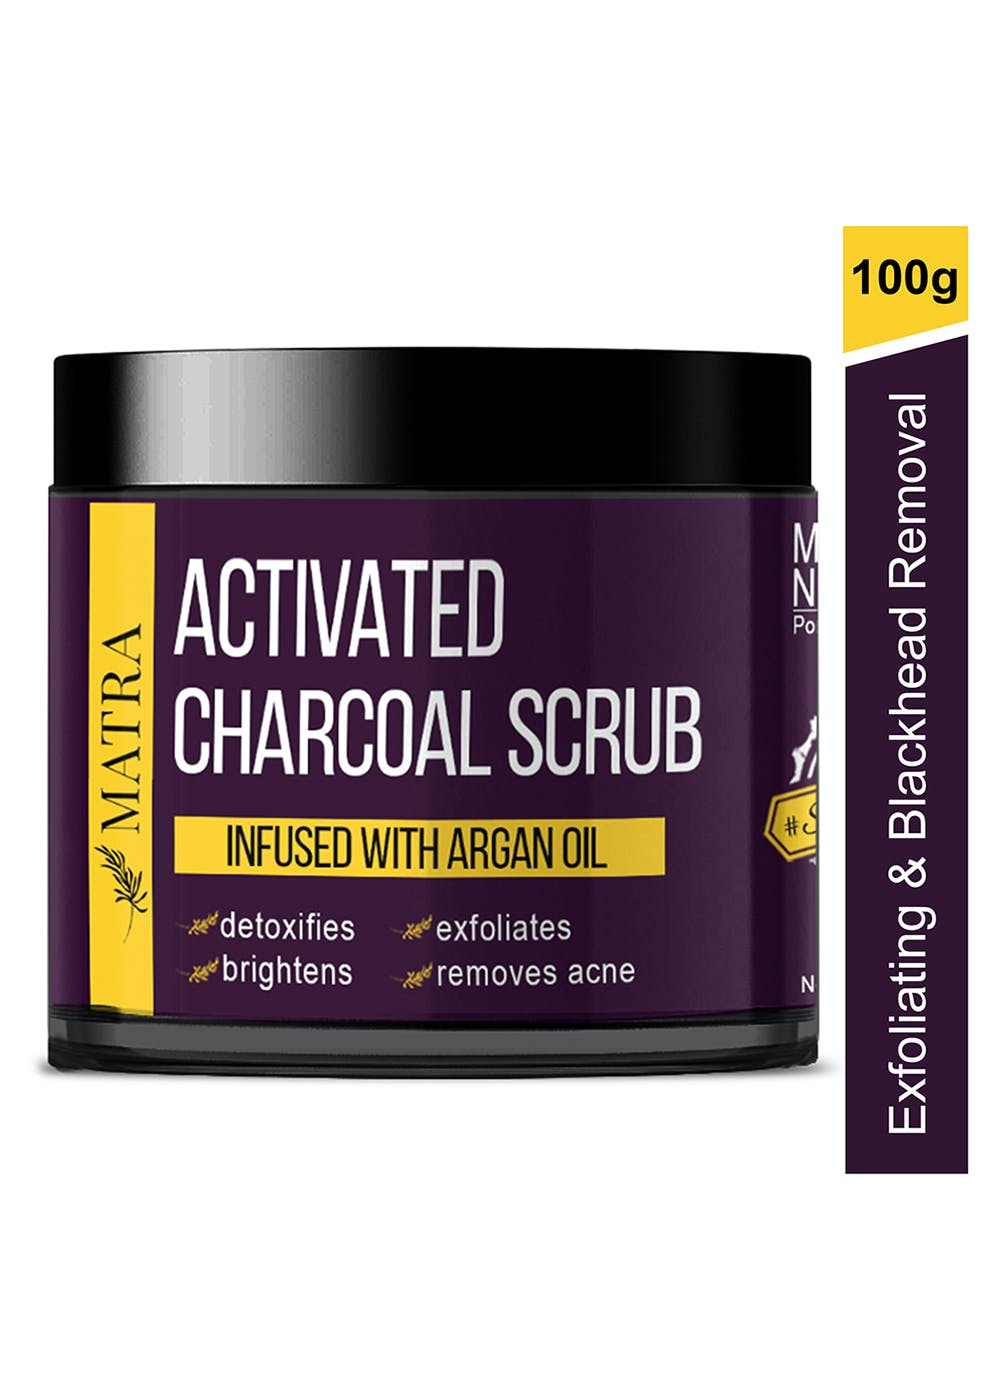 Activated Charcoal Scrub Infused With Argan Oil